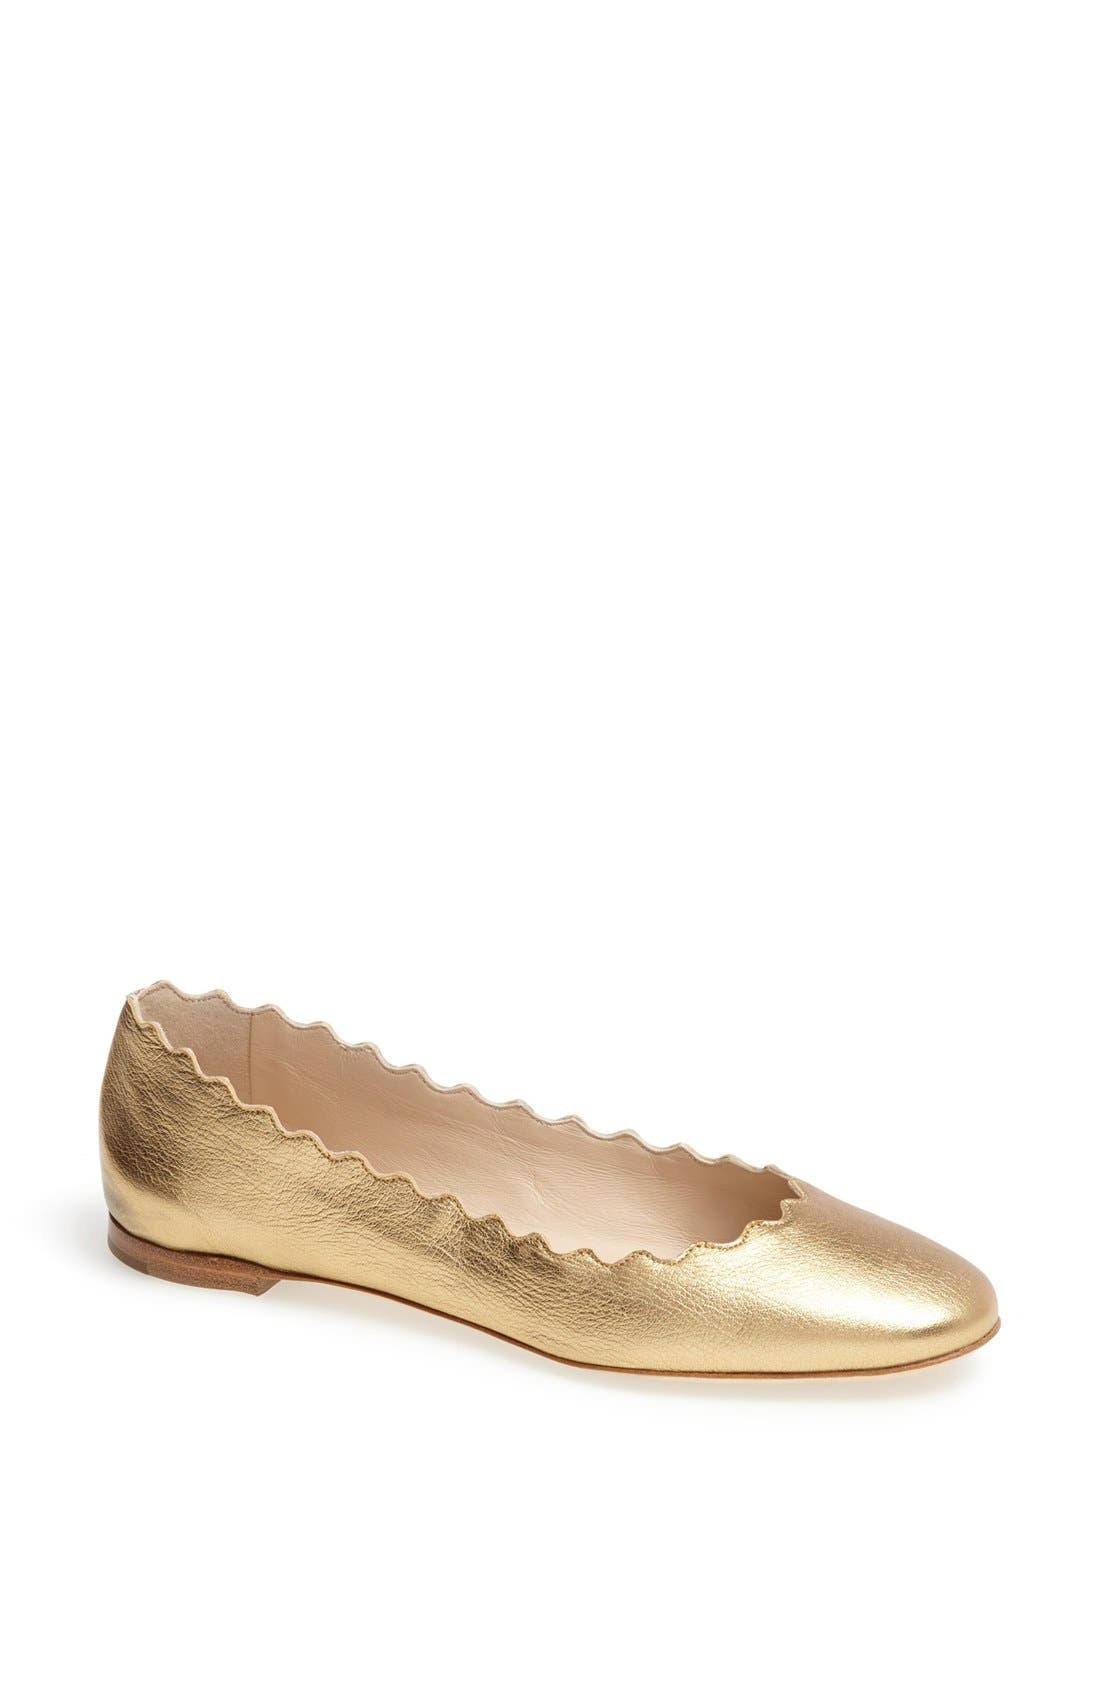 Alternate Image 1 Selected - Chloé 'Lauren' Scalloped Ballet Flat (Women)